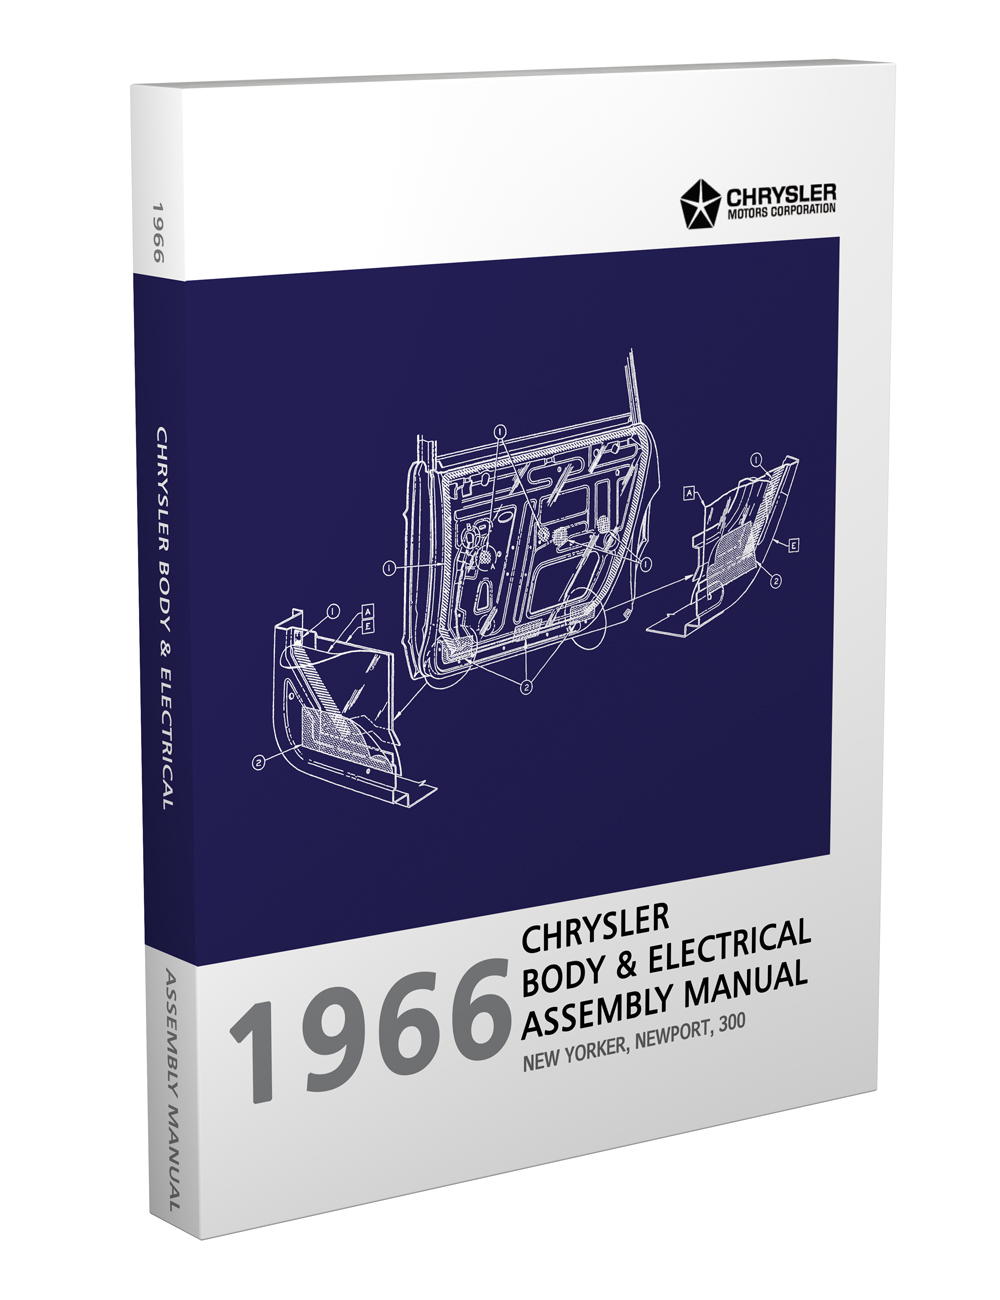 medium resolution of 1966 chrysler body electrical assembly manual reprint